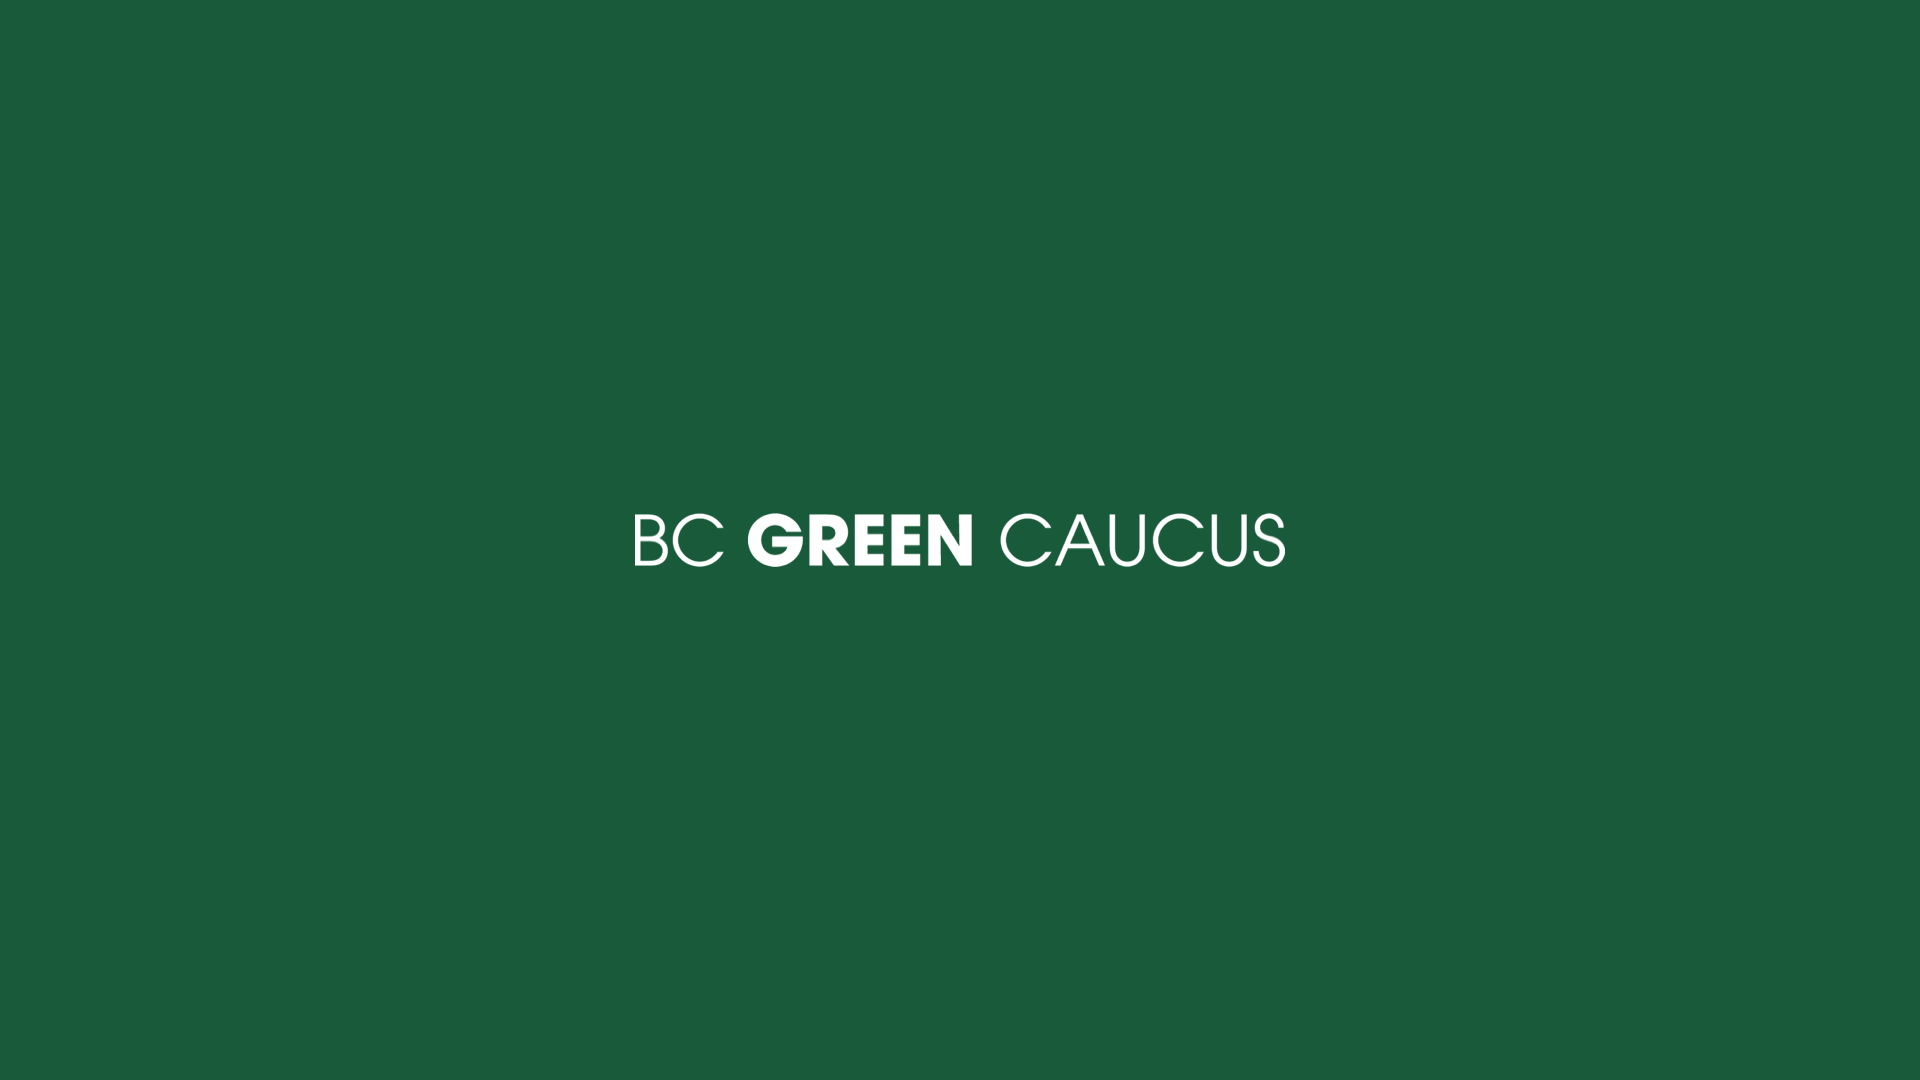 BC Green Caucus website & commentary on economic recovery